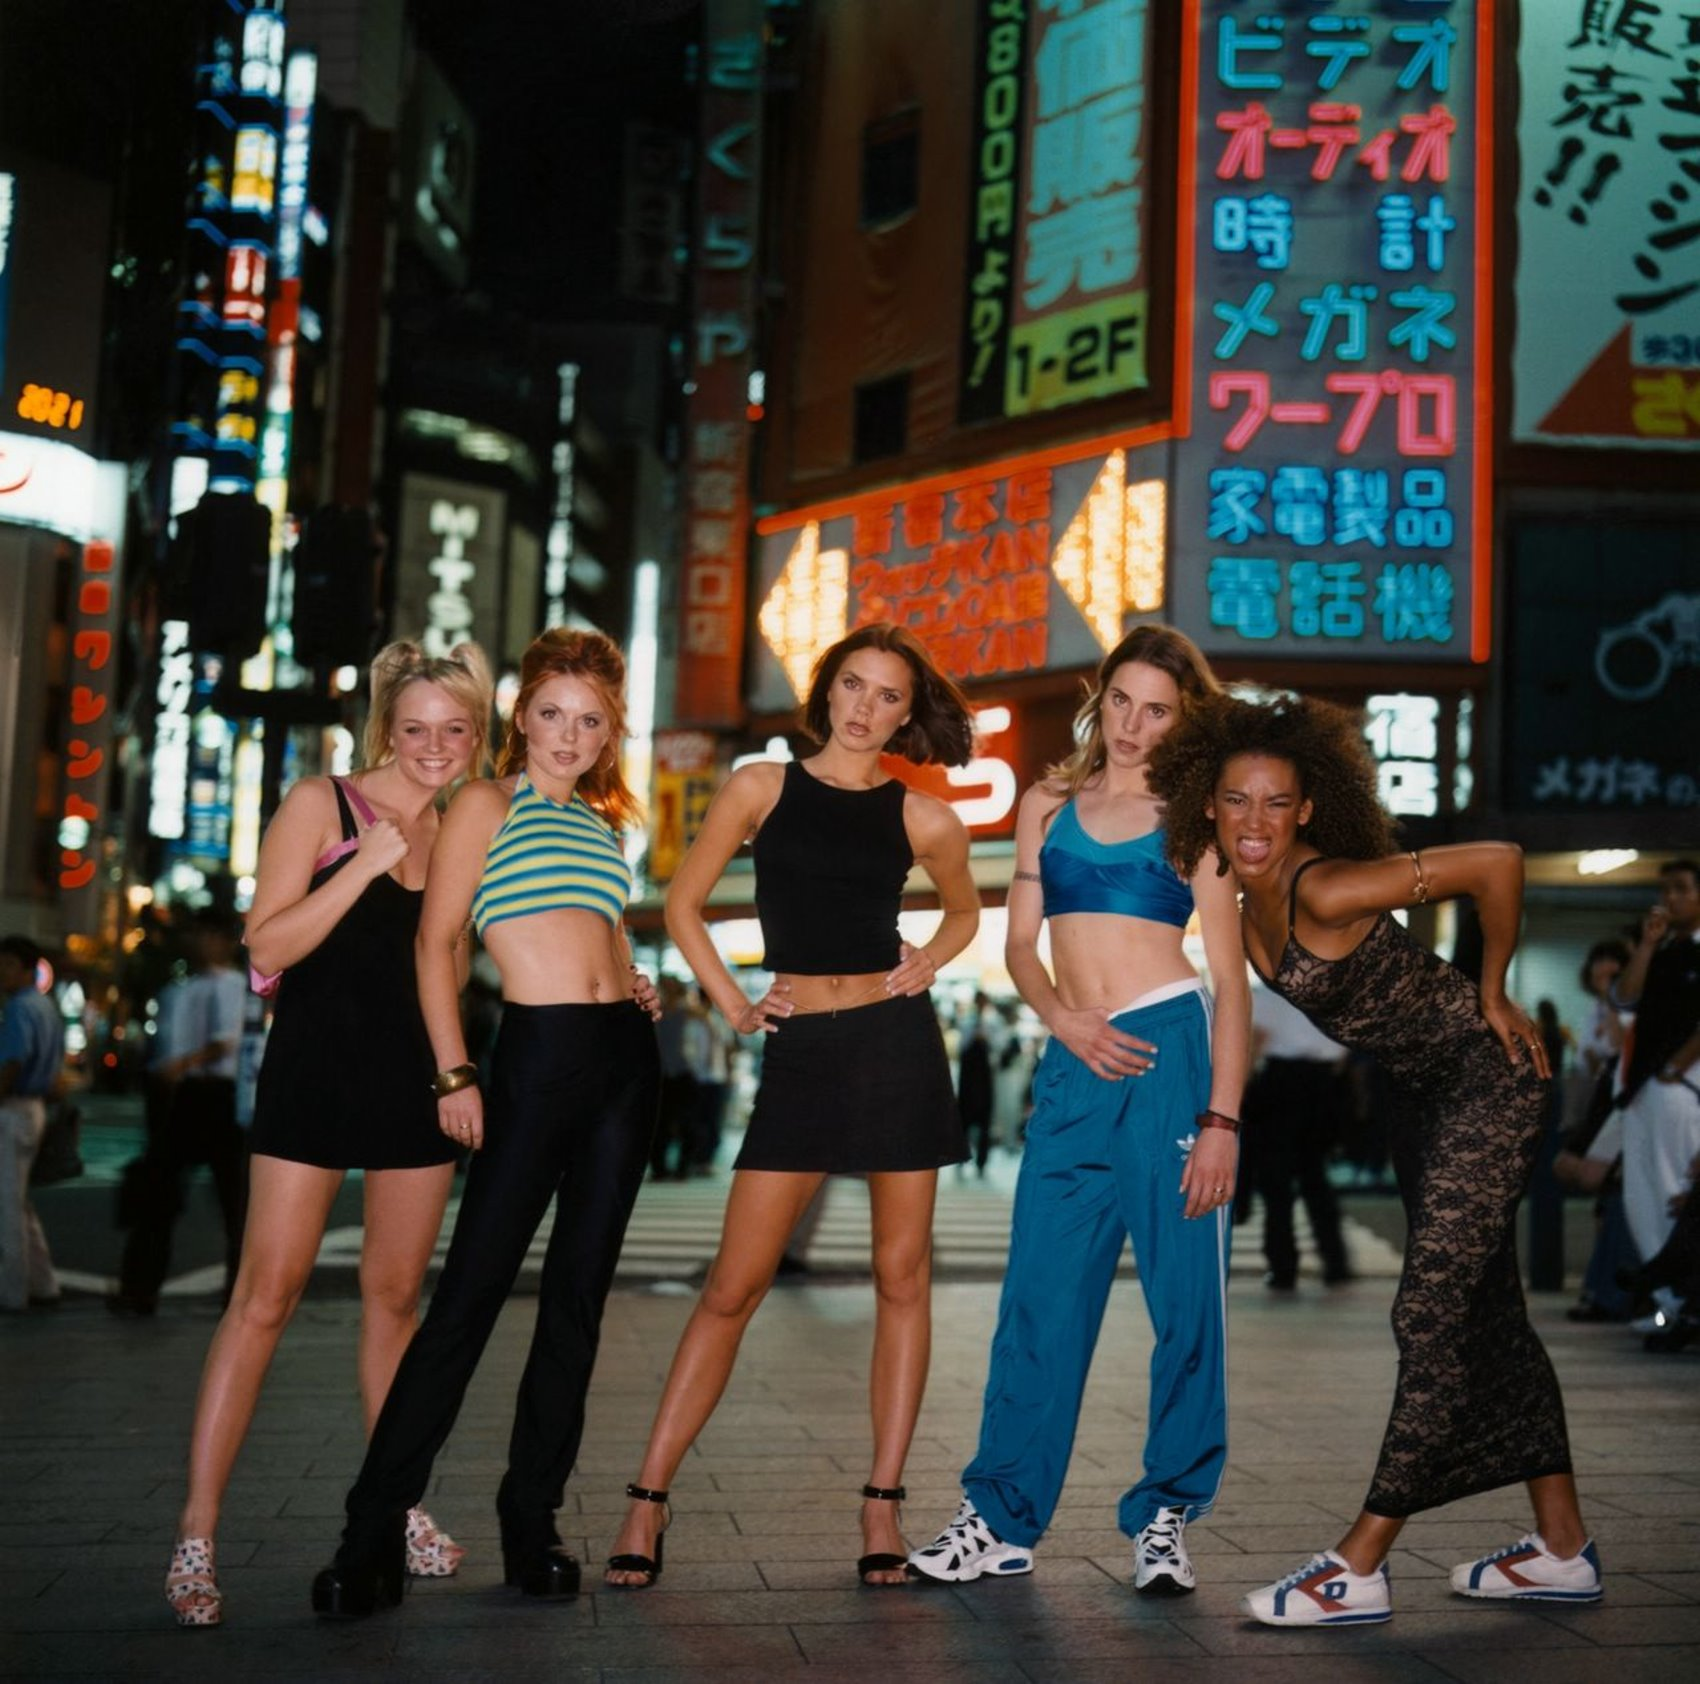 Girl Abs Wallpaper Spice Girls Photo 76 Of 141 Pics Wallpaper Photo